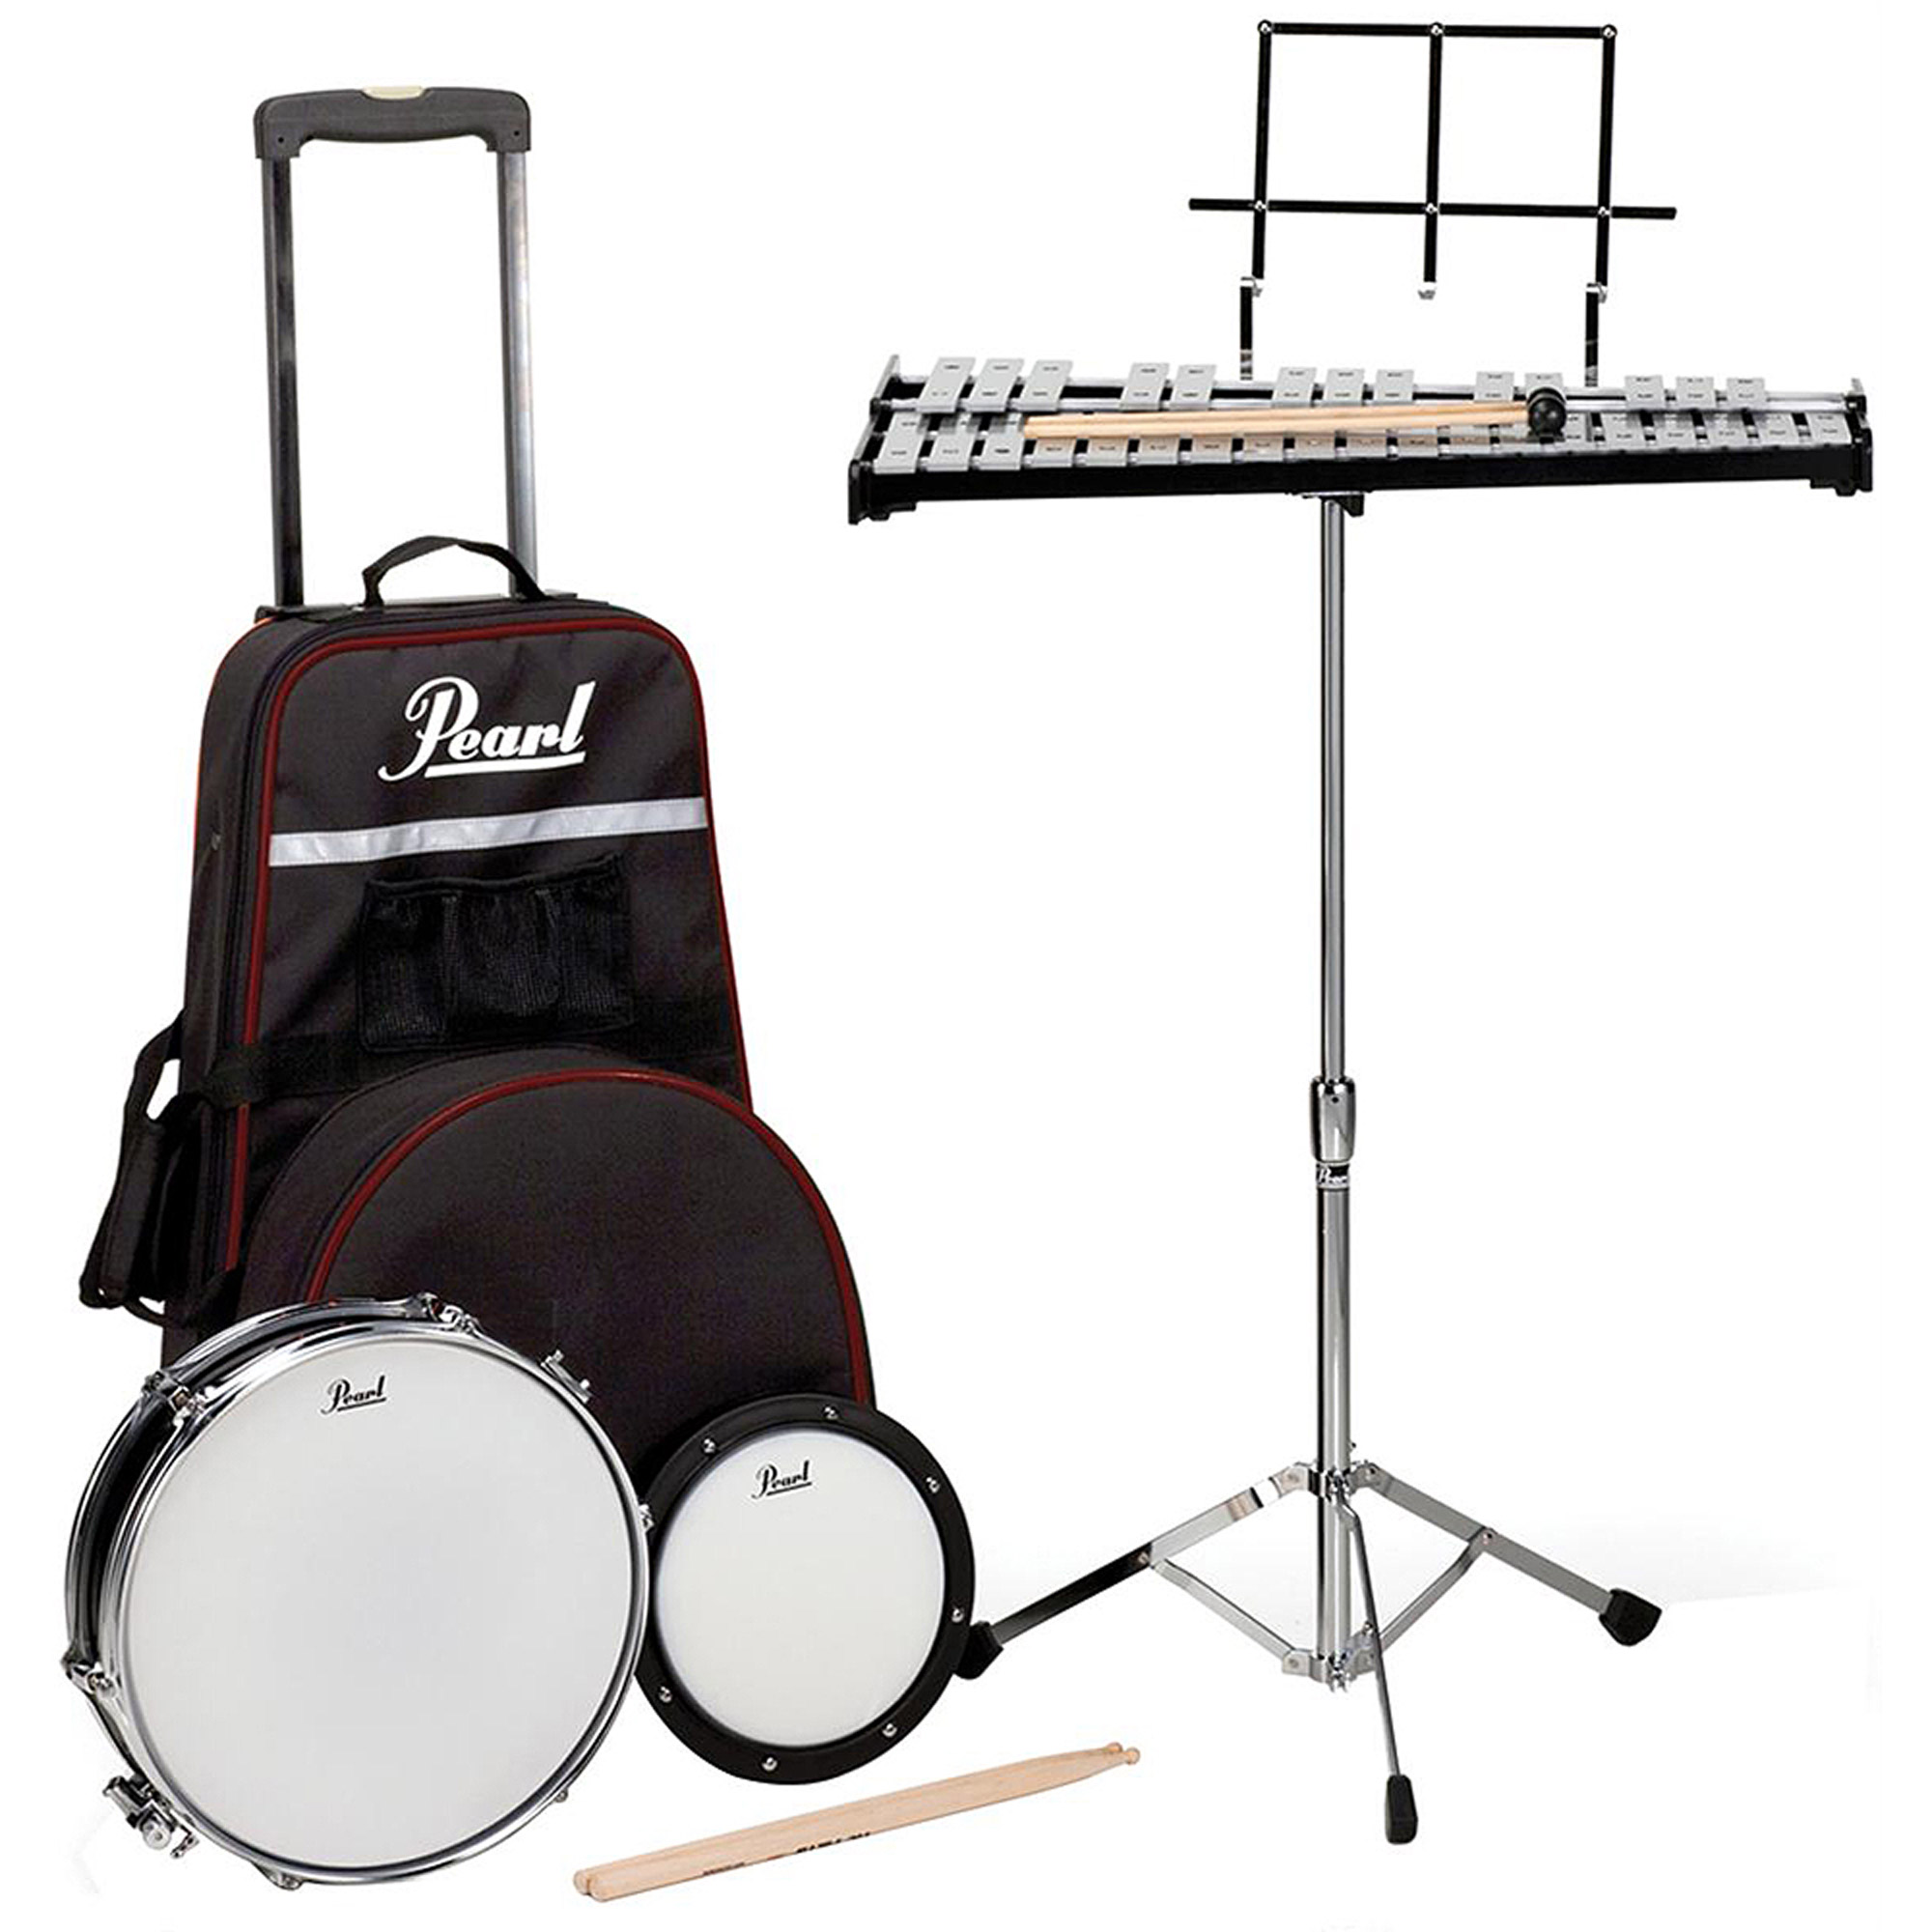 Pearl PL900C Educational Snare Drum/Bell Kit